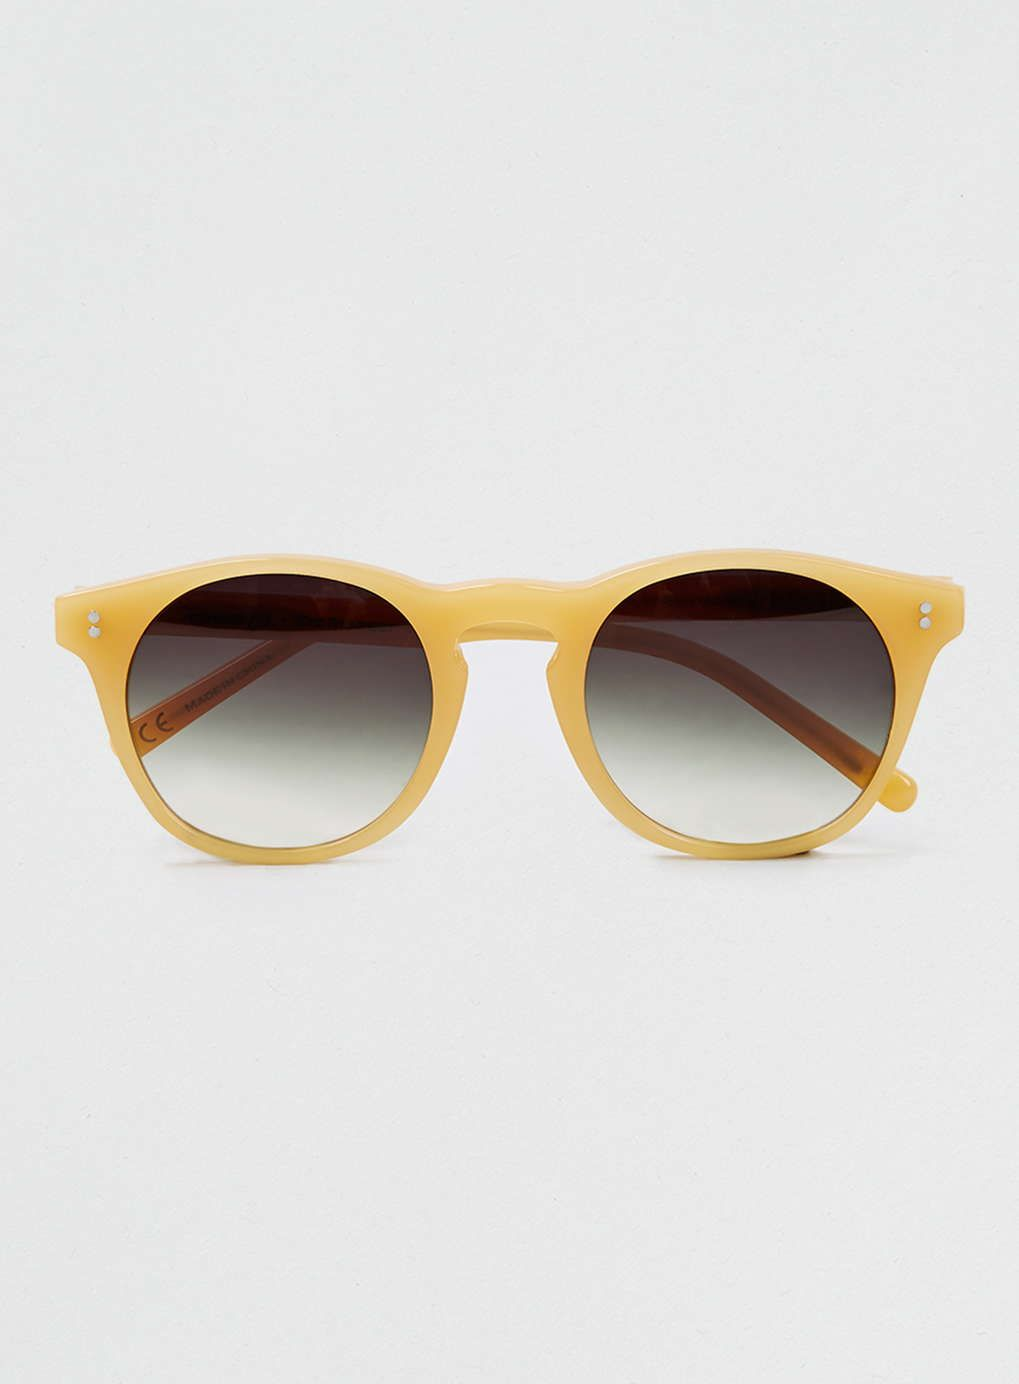 Topman LTD x Eye Respect ombre caramel sunglasses